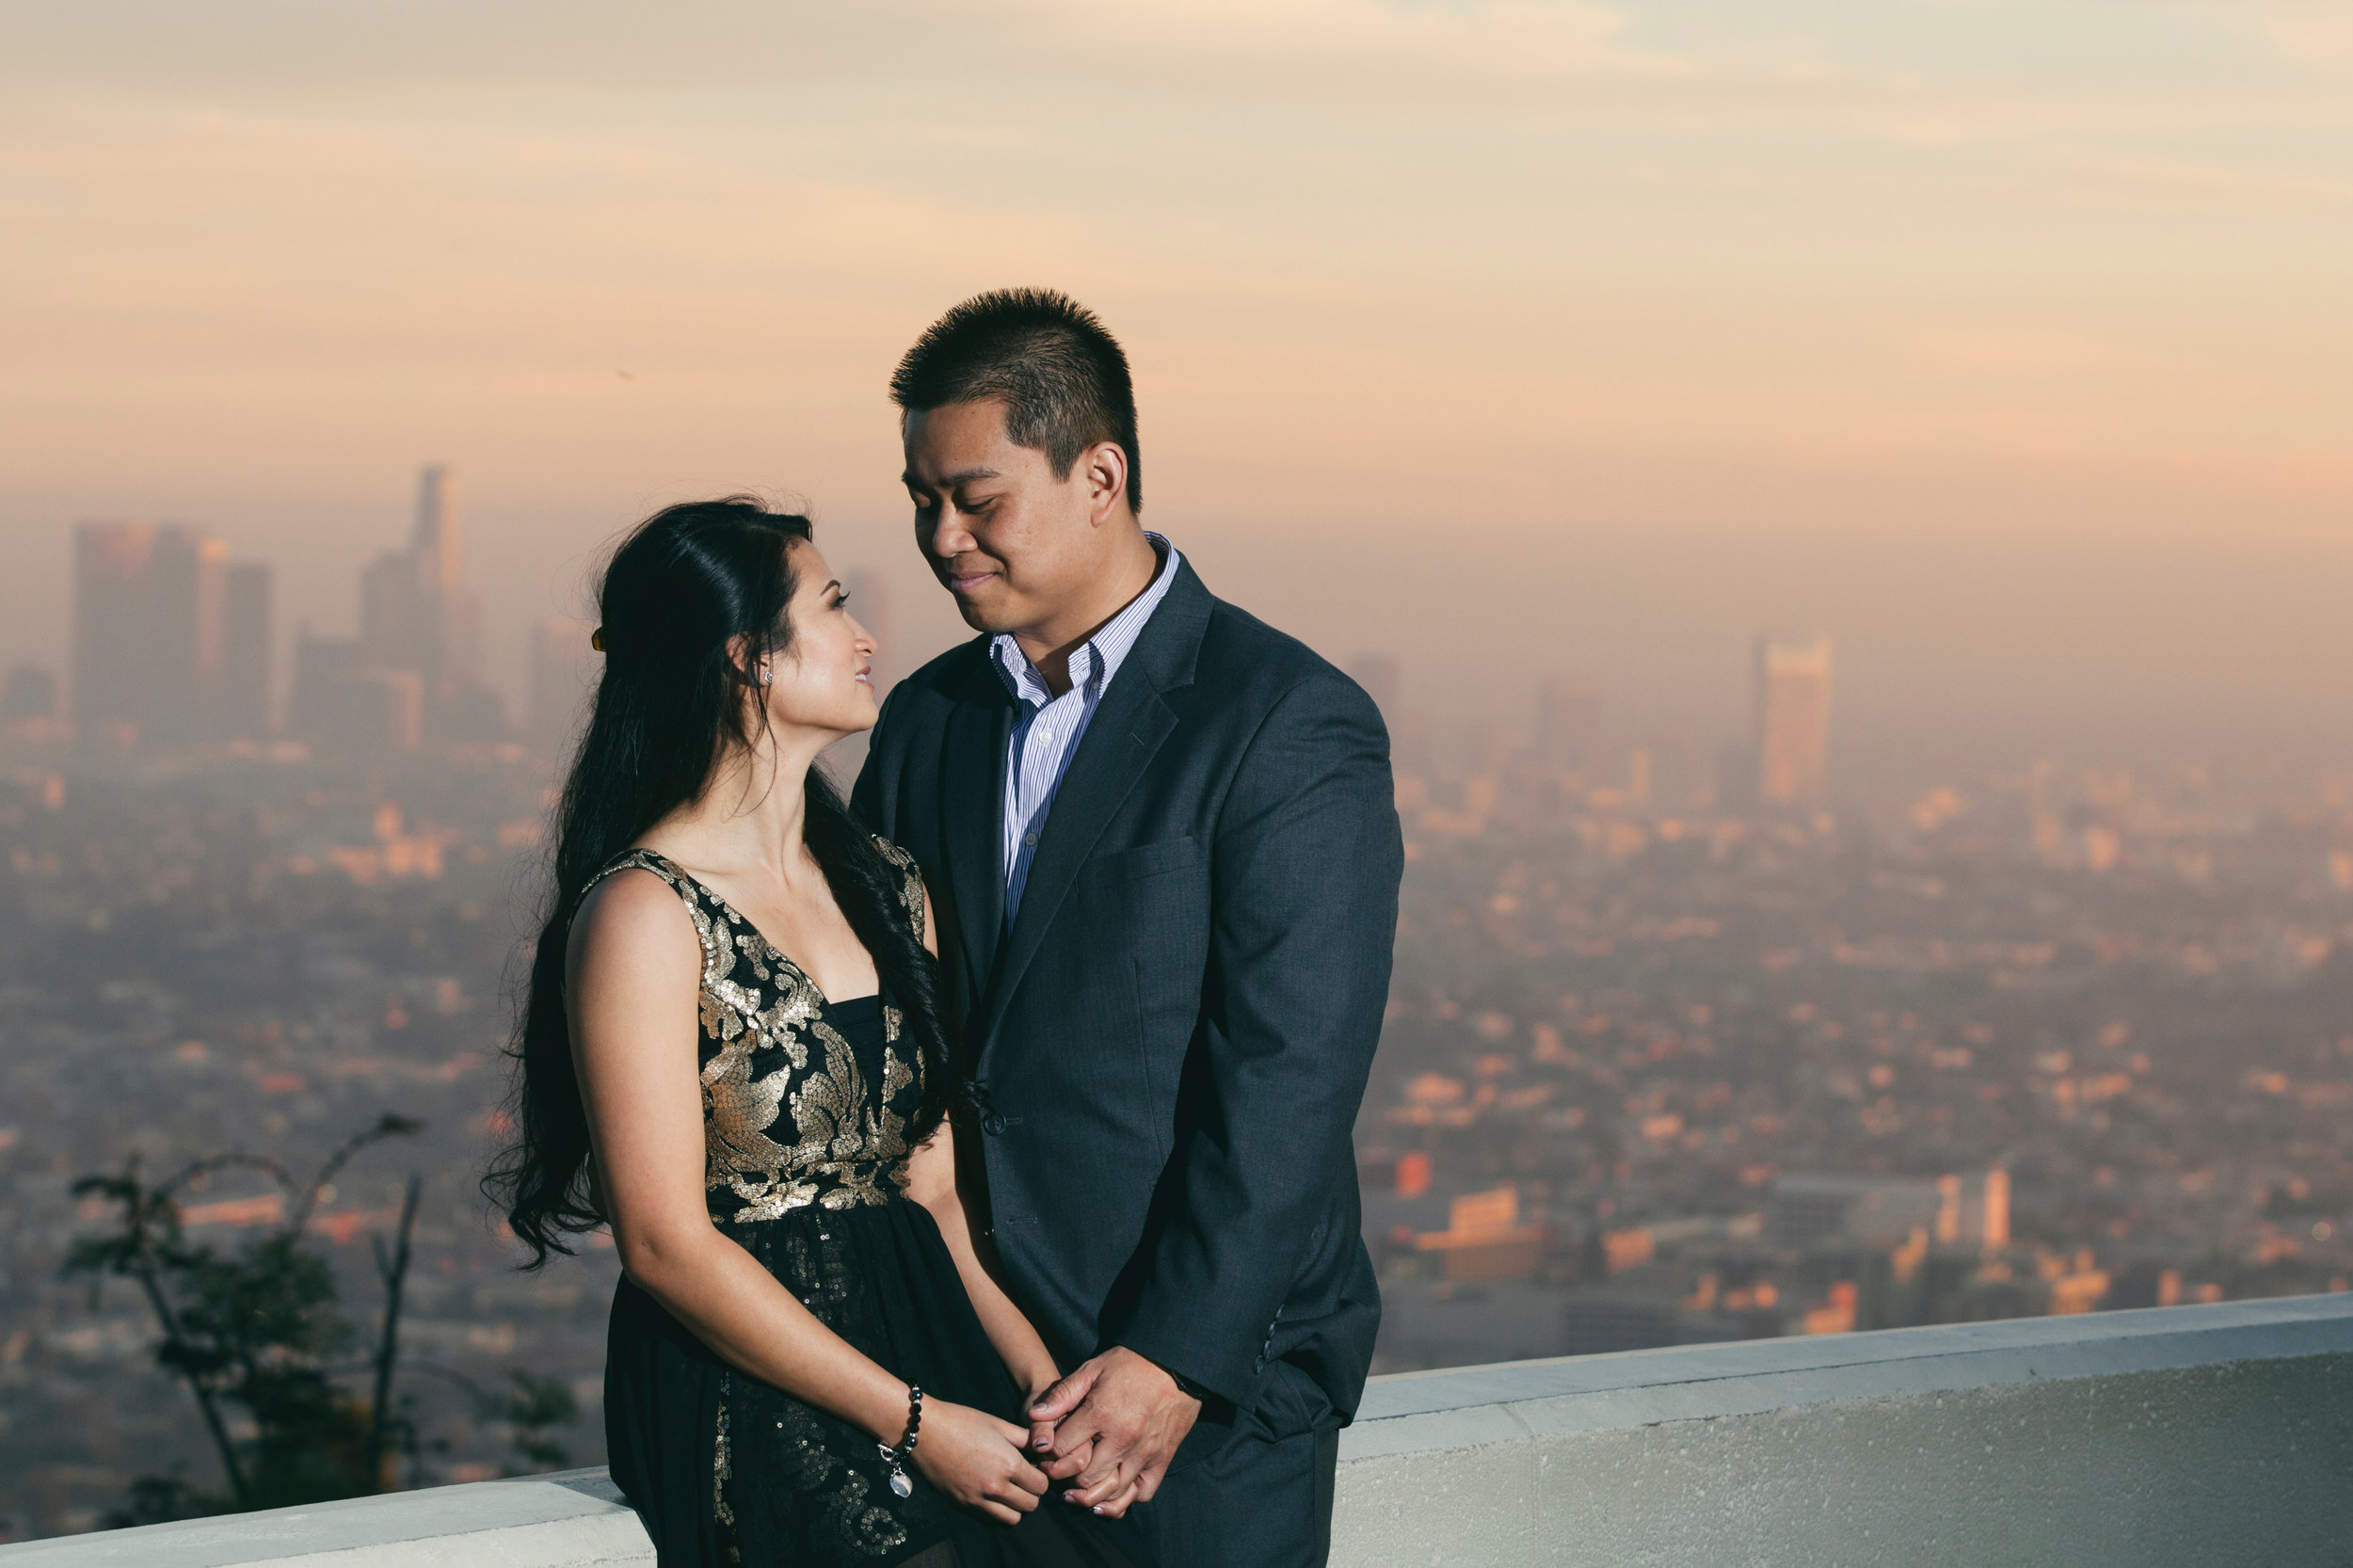 Griffith Observatory Engagement Photos Nicole and Vien-8549.jpg